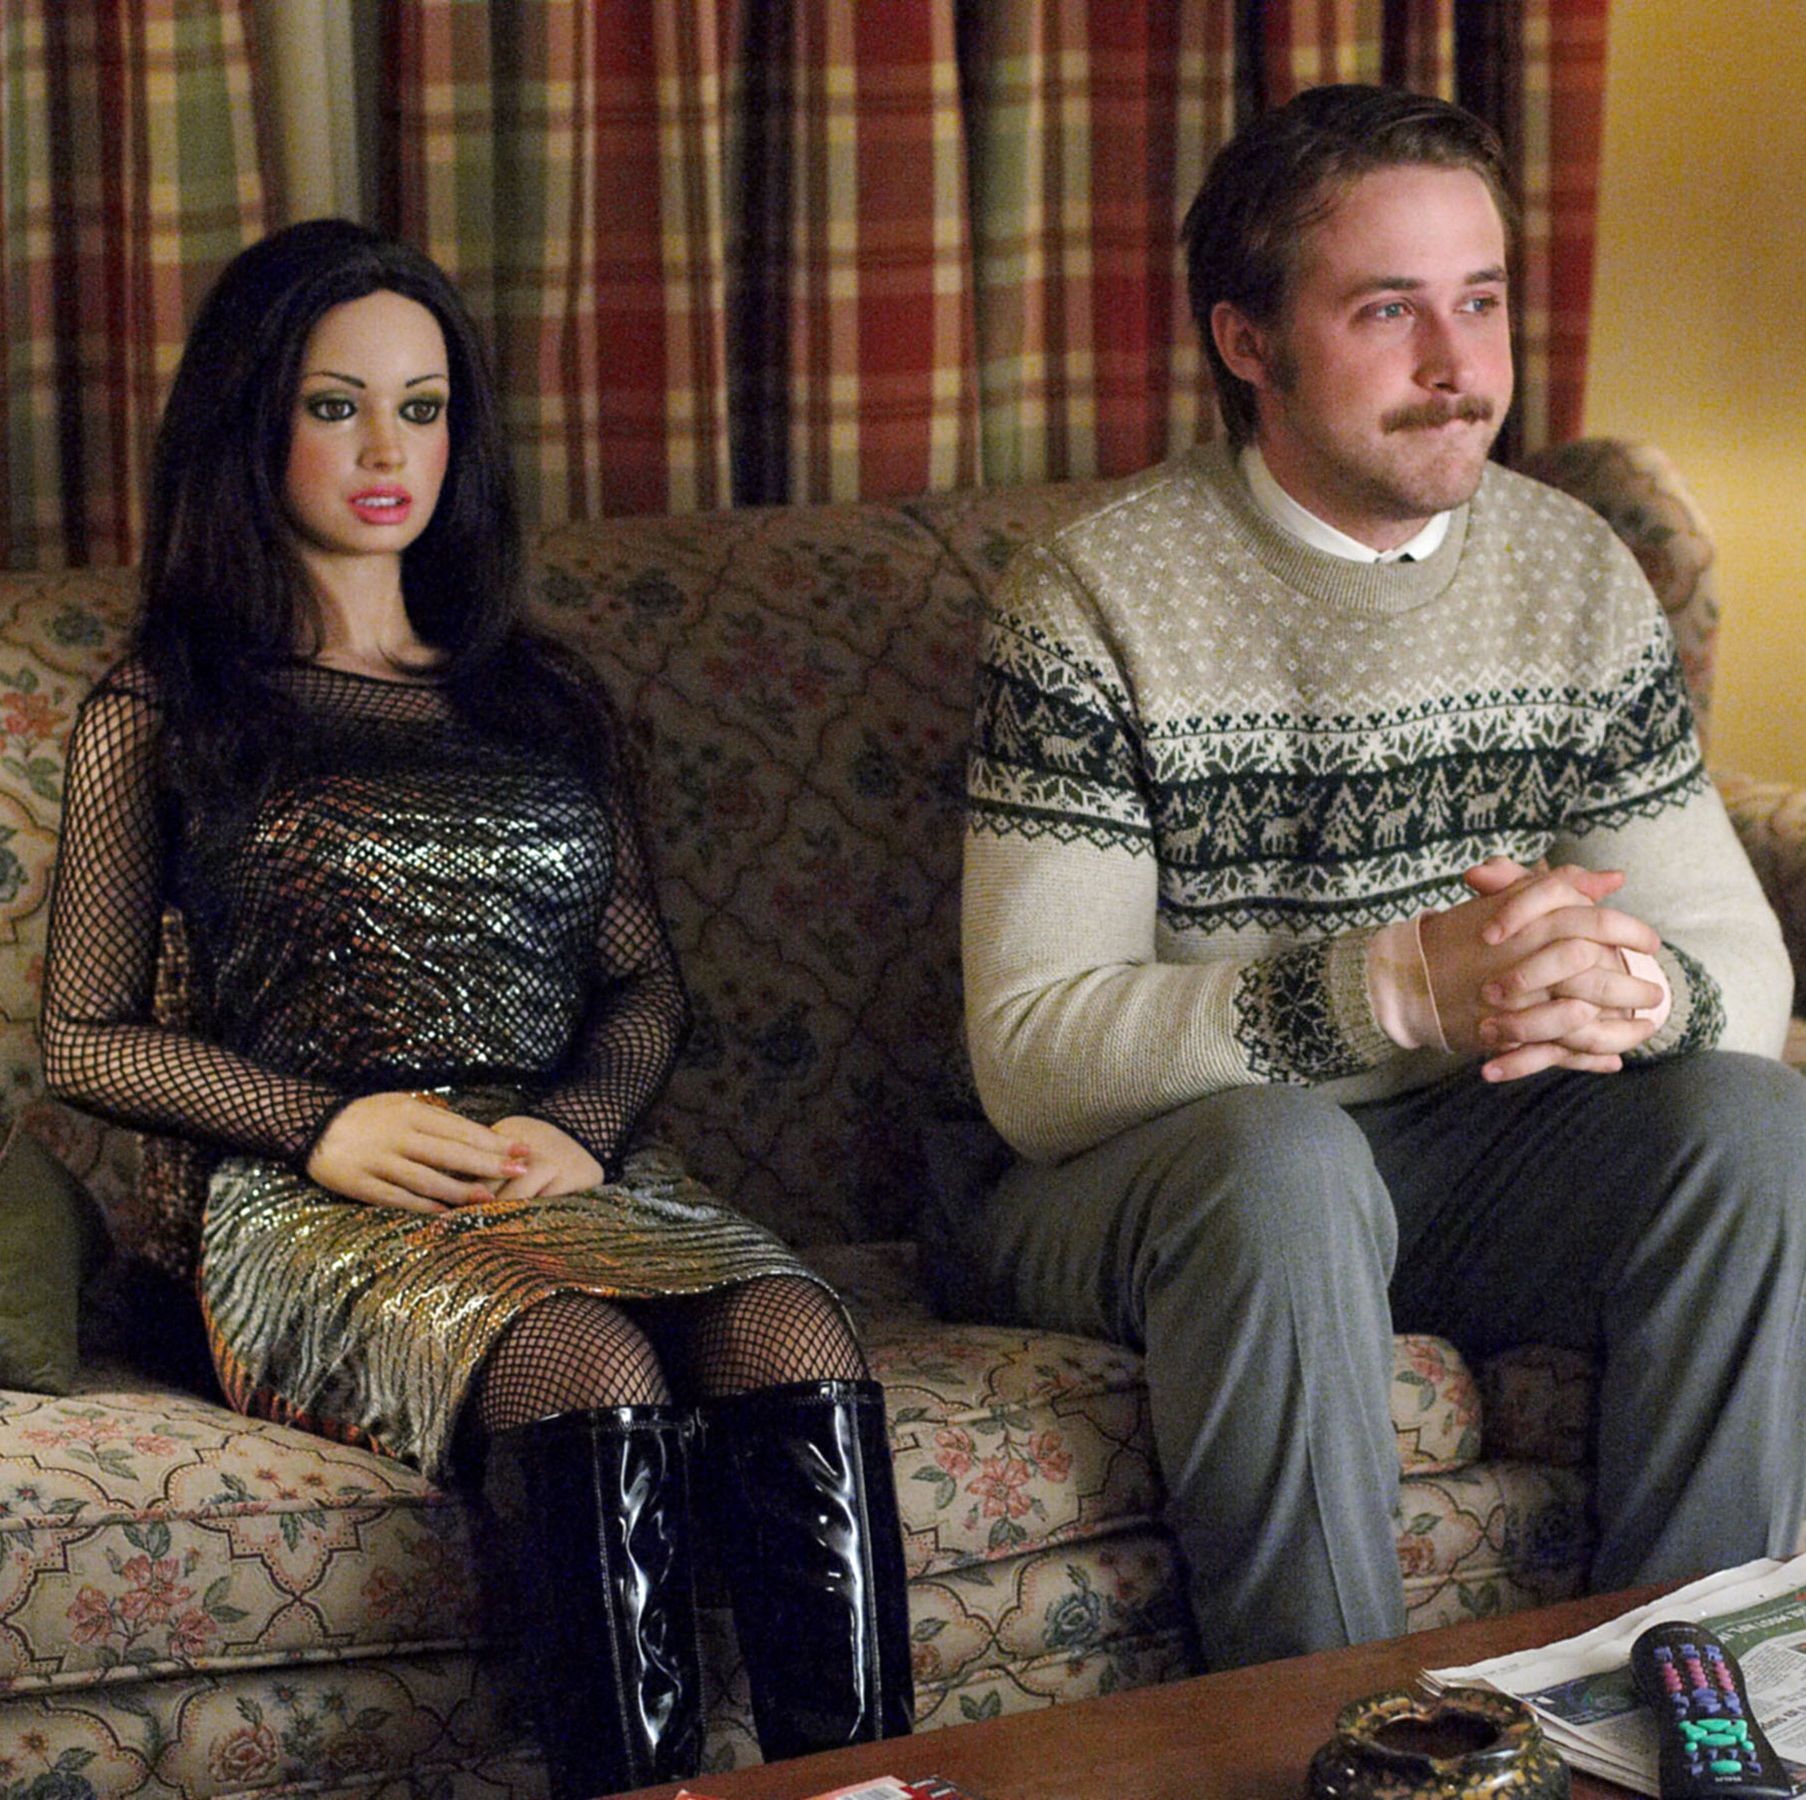 Lars and the Real Girl Ryan Gosling plays a quiet and lonely young man who falls in love with a sex doll in this light-hearted, small-town comedy that works thanks Gosling's compassionate and funny performance.